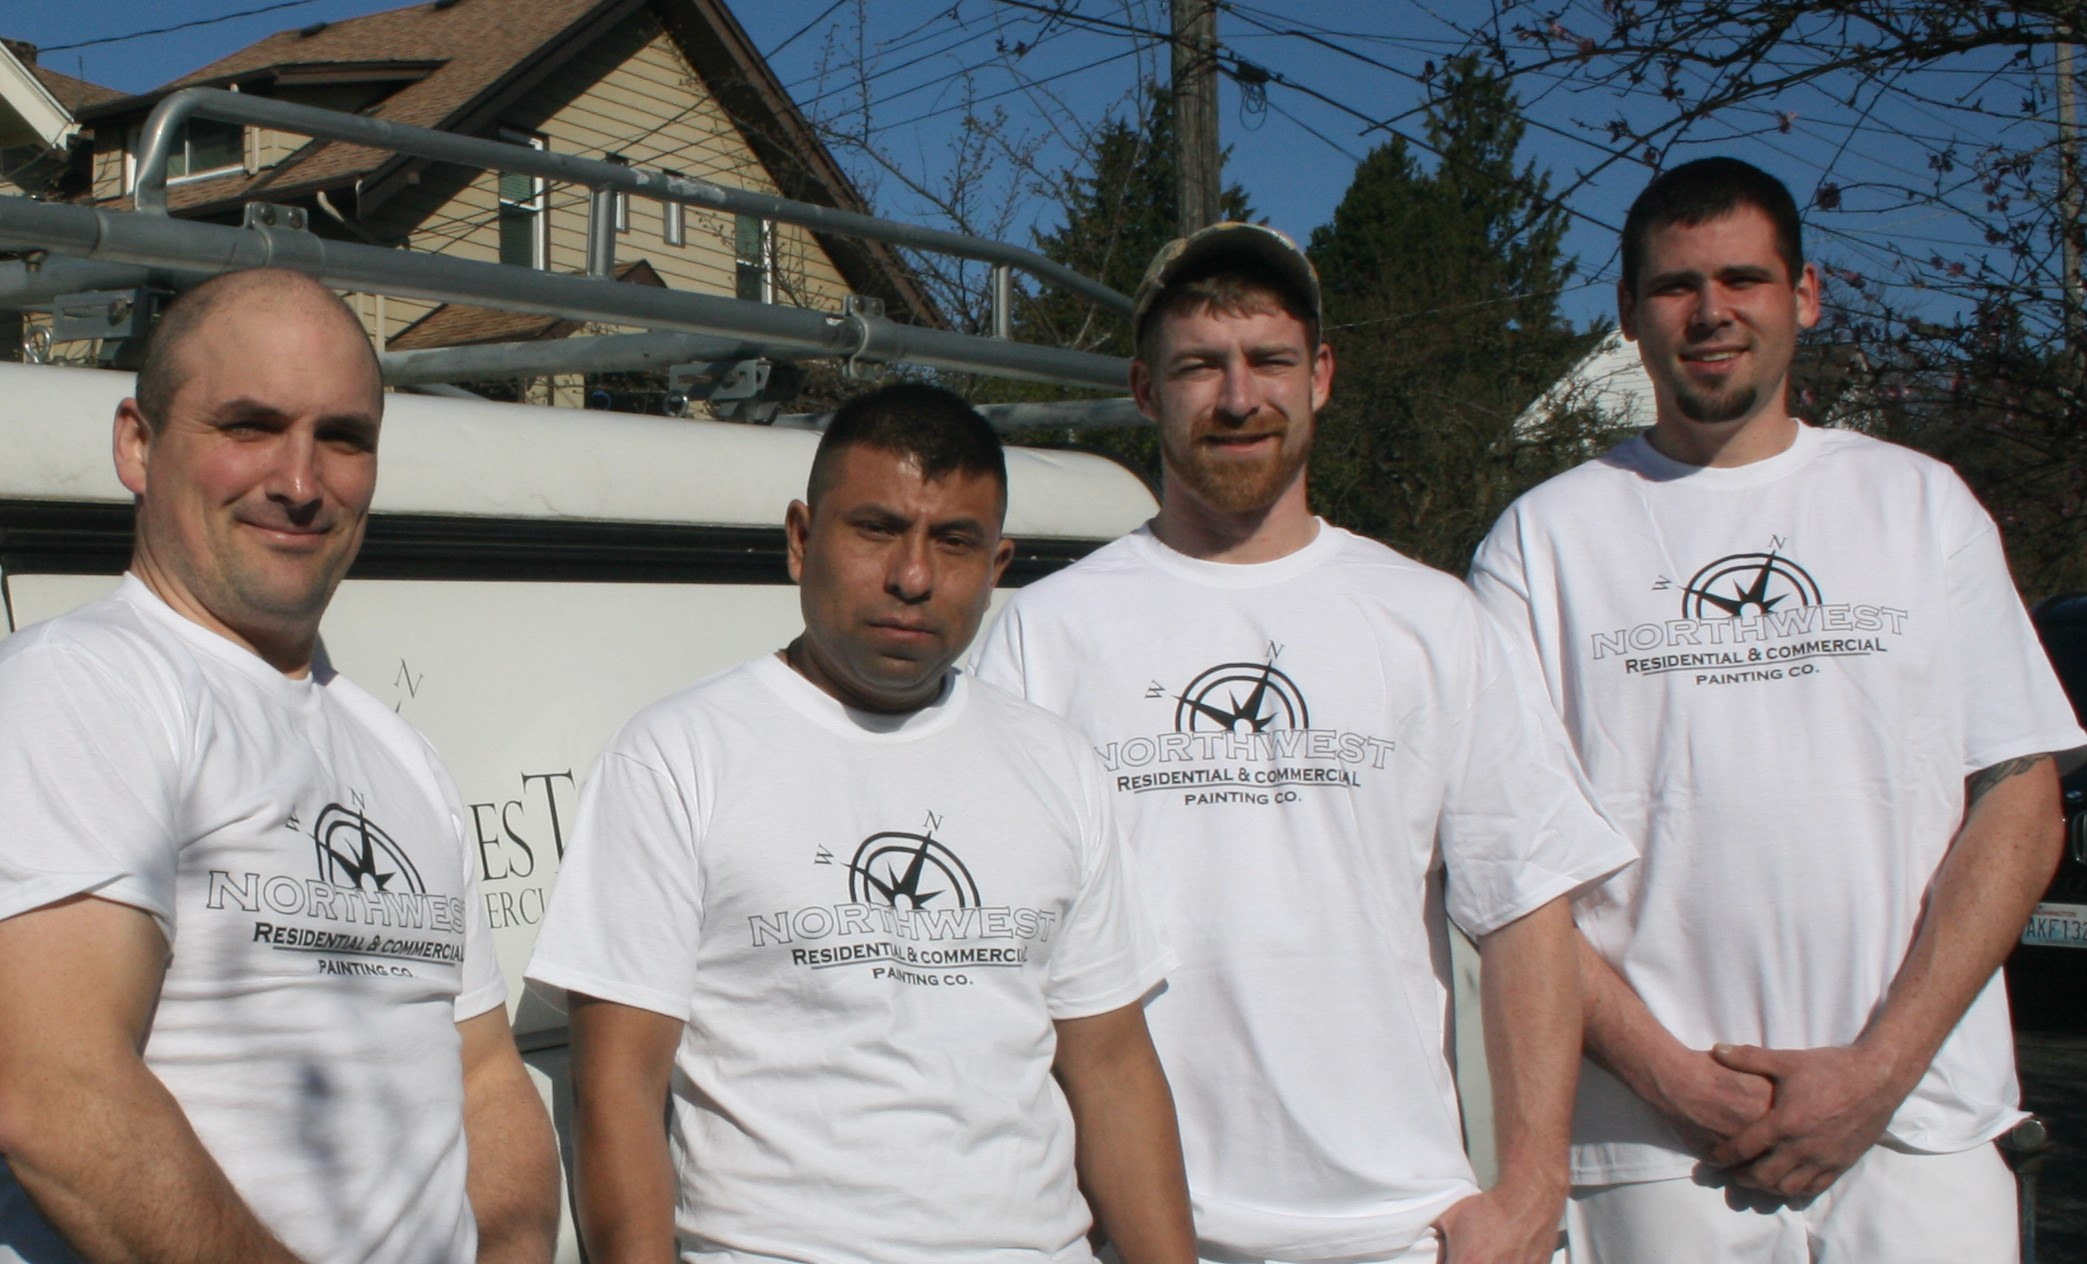 seattle house and commercial painting company